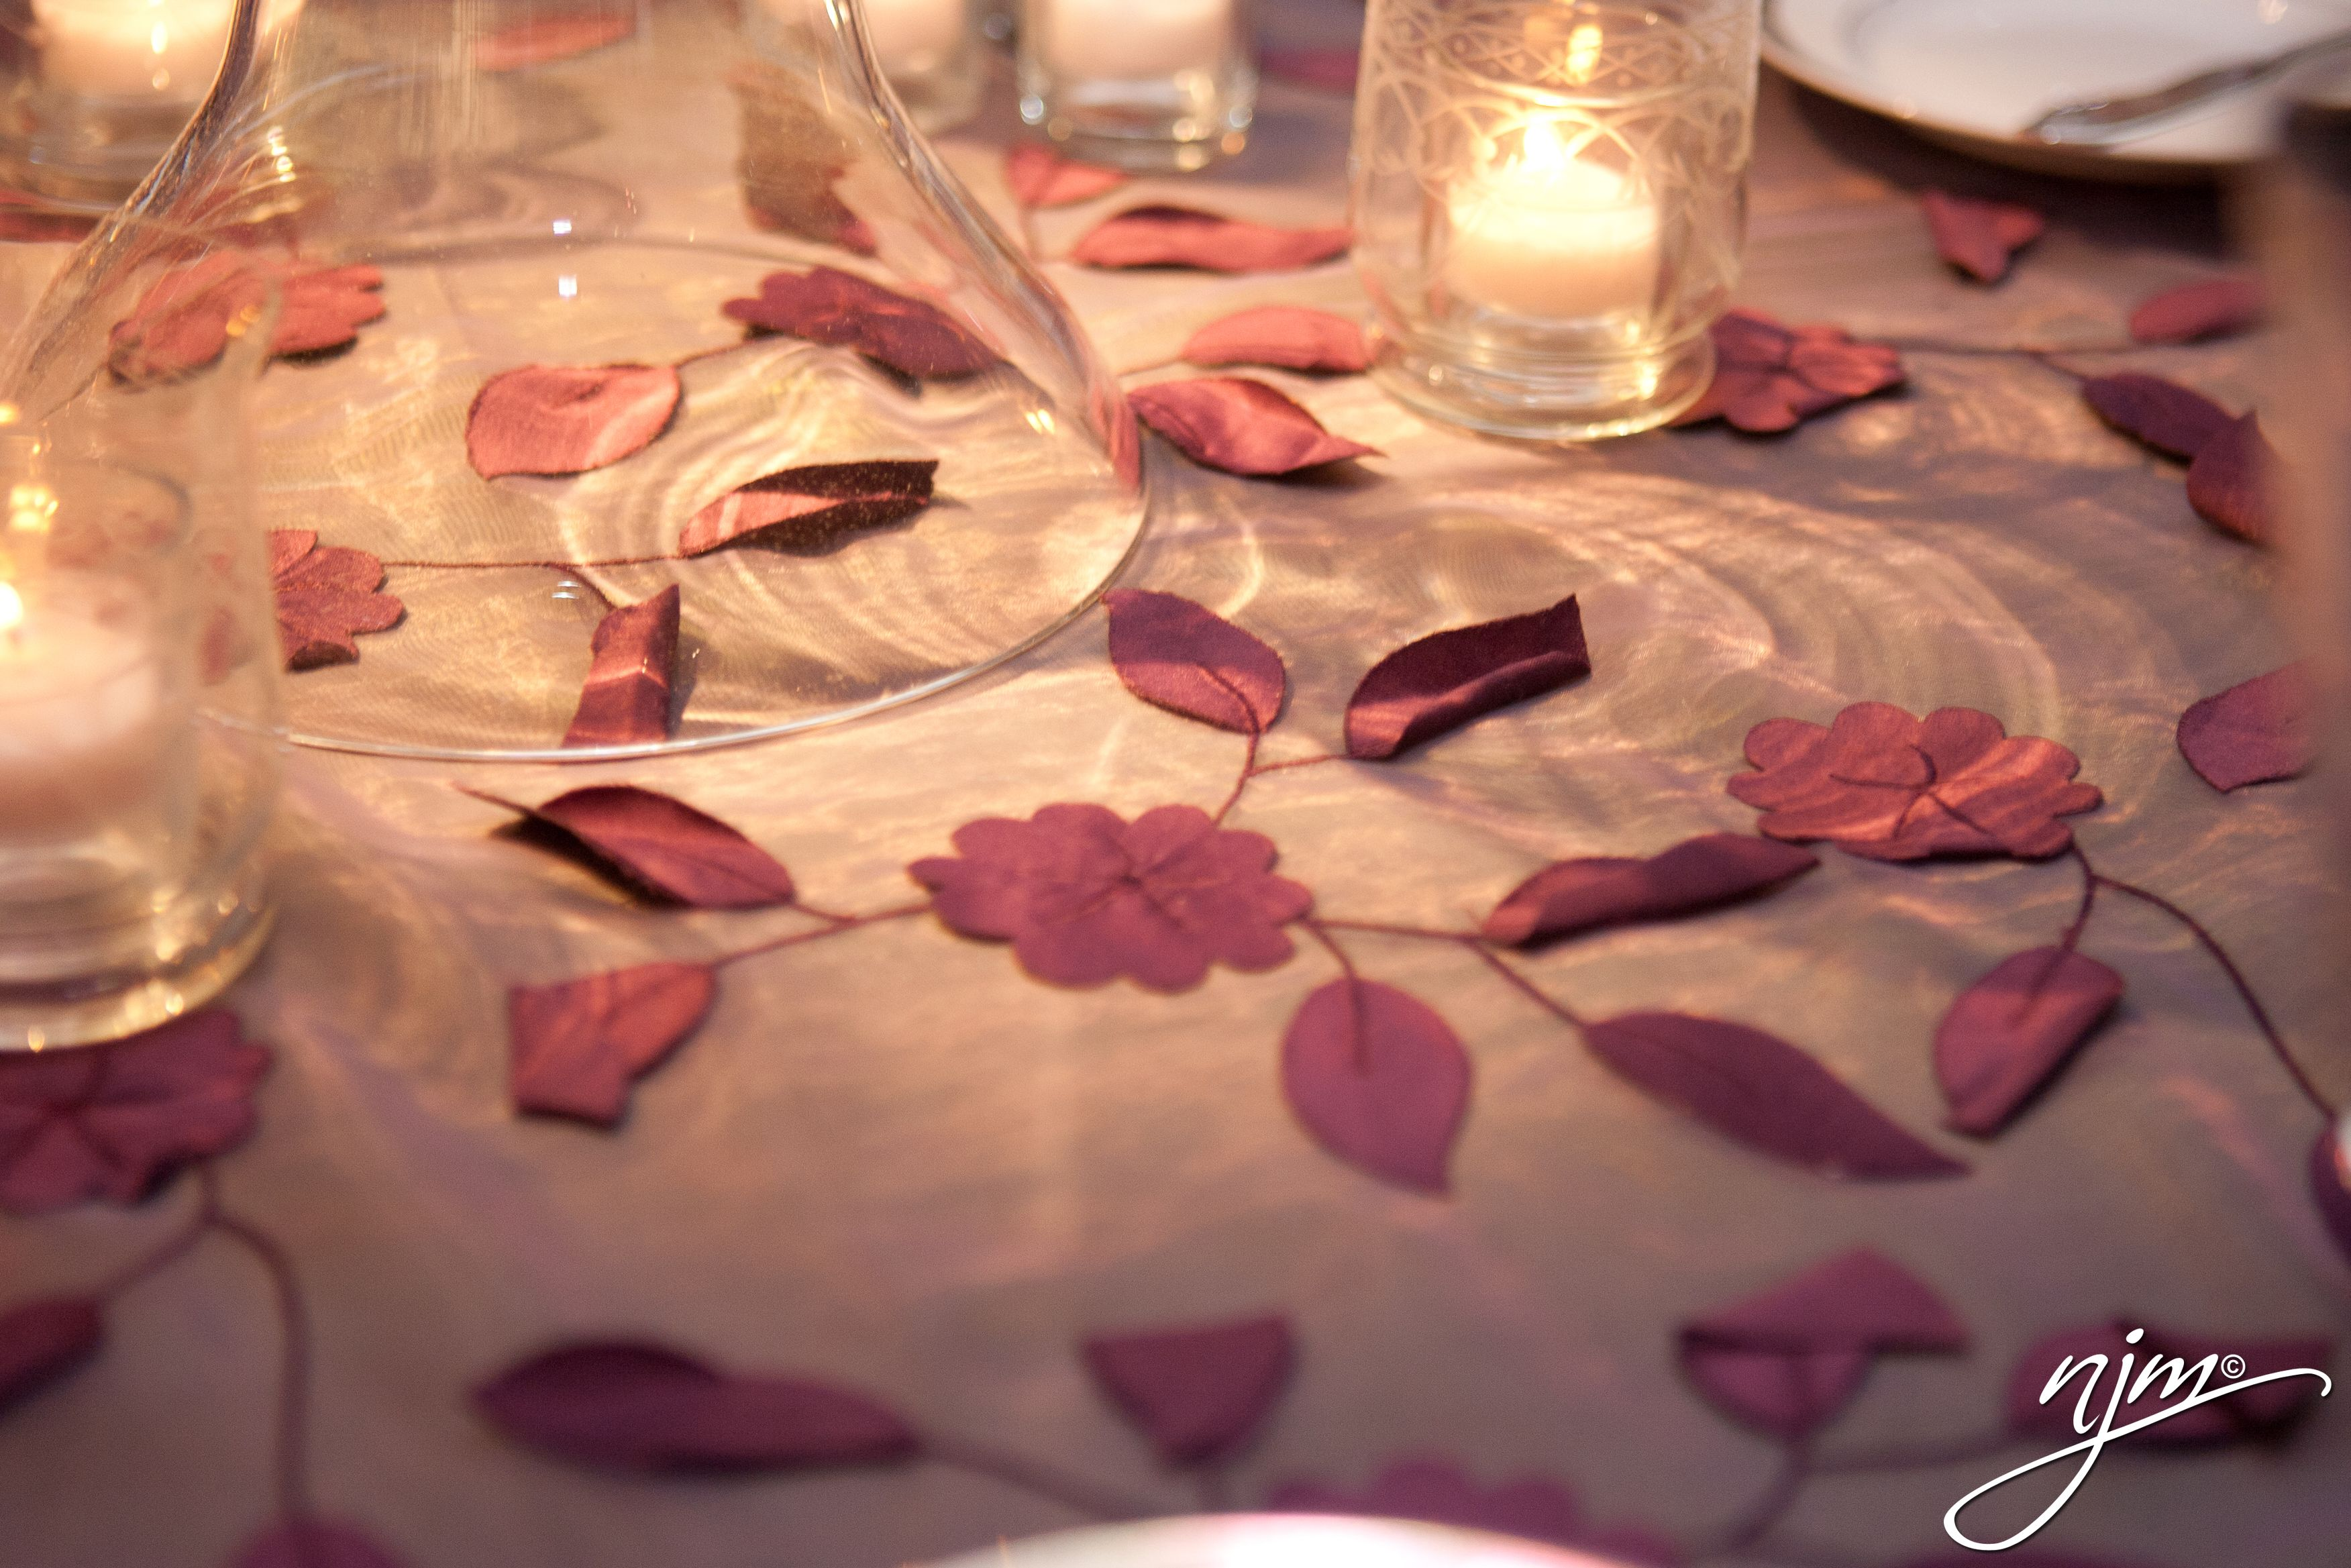 Sometimes the smallest details make the most impact, as these small purple leaves turn a simple setup into a soft, romantic tablescape.